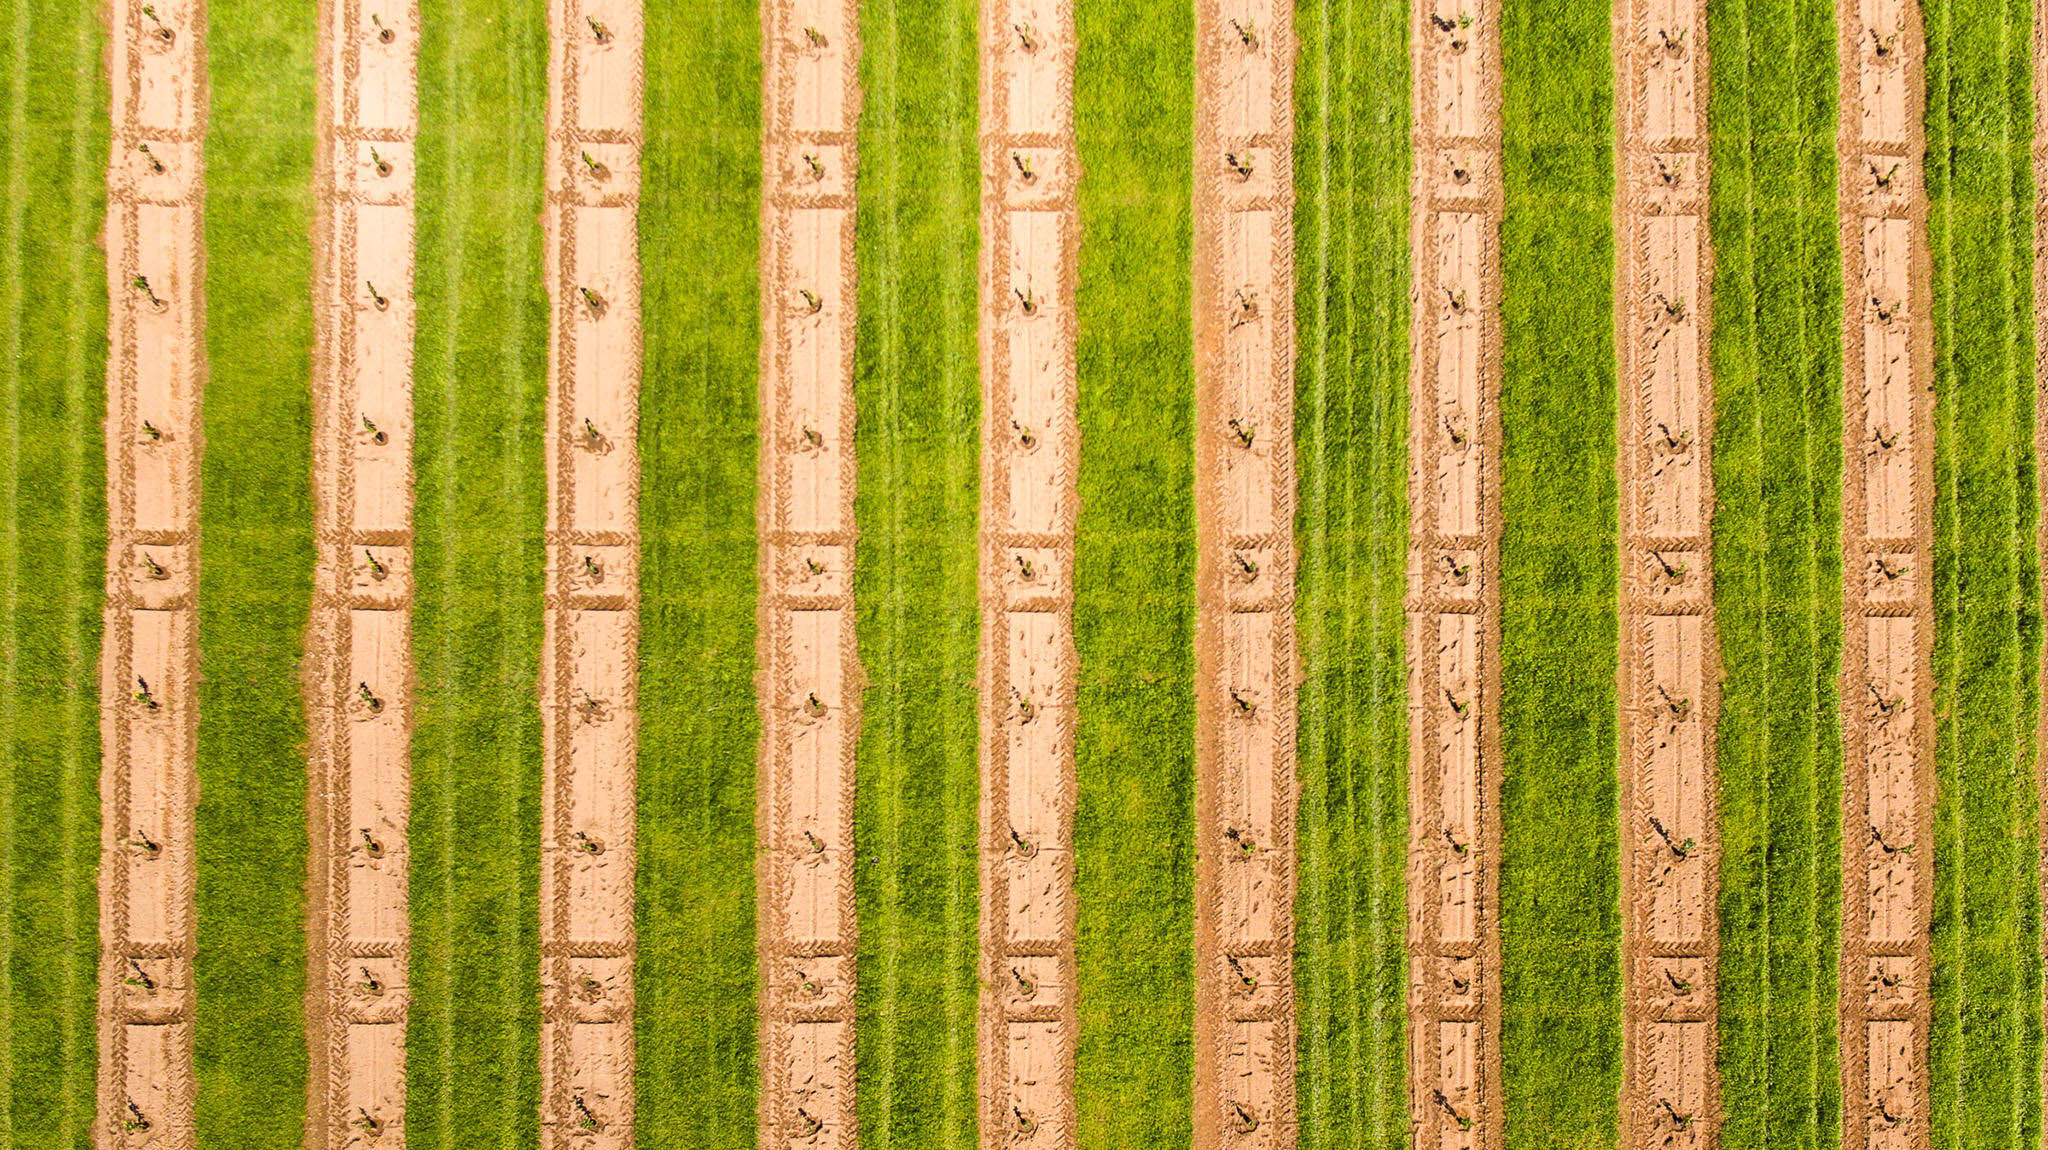 Aerial photo showing A geometric pattern of bare earth, grass, and tractor markings in a newly planted orchard. Photo by Caro Telfer